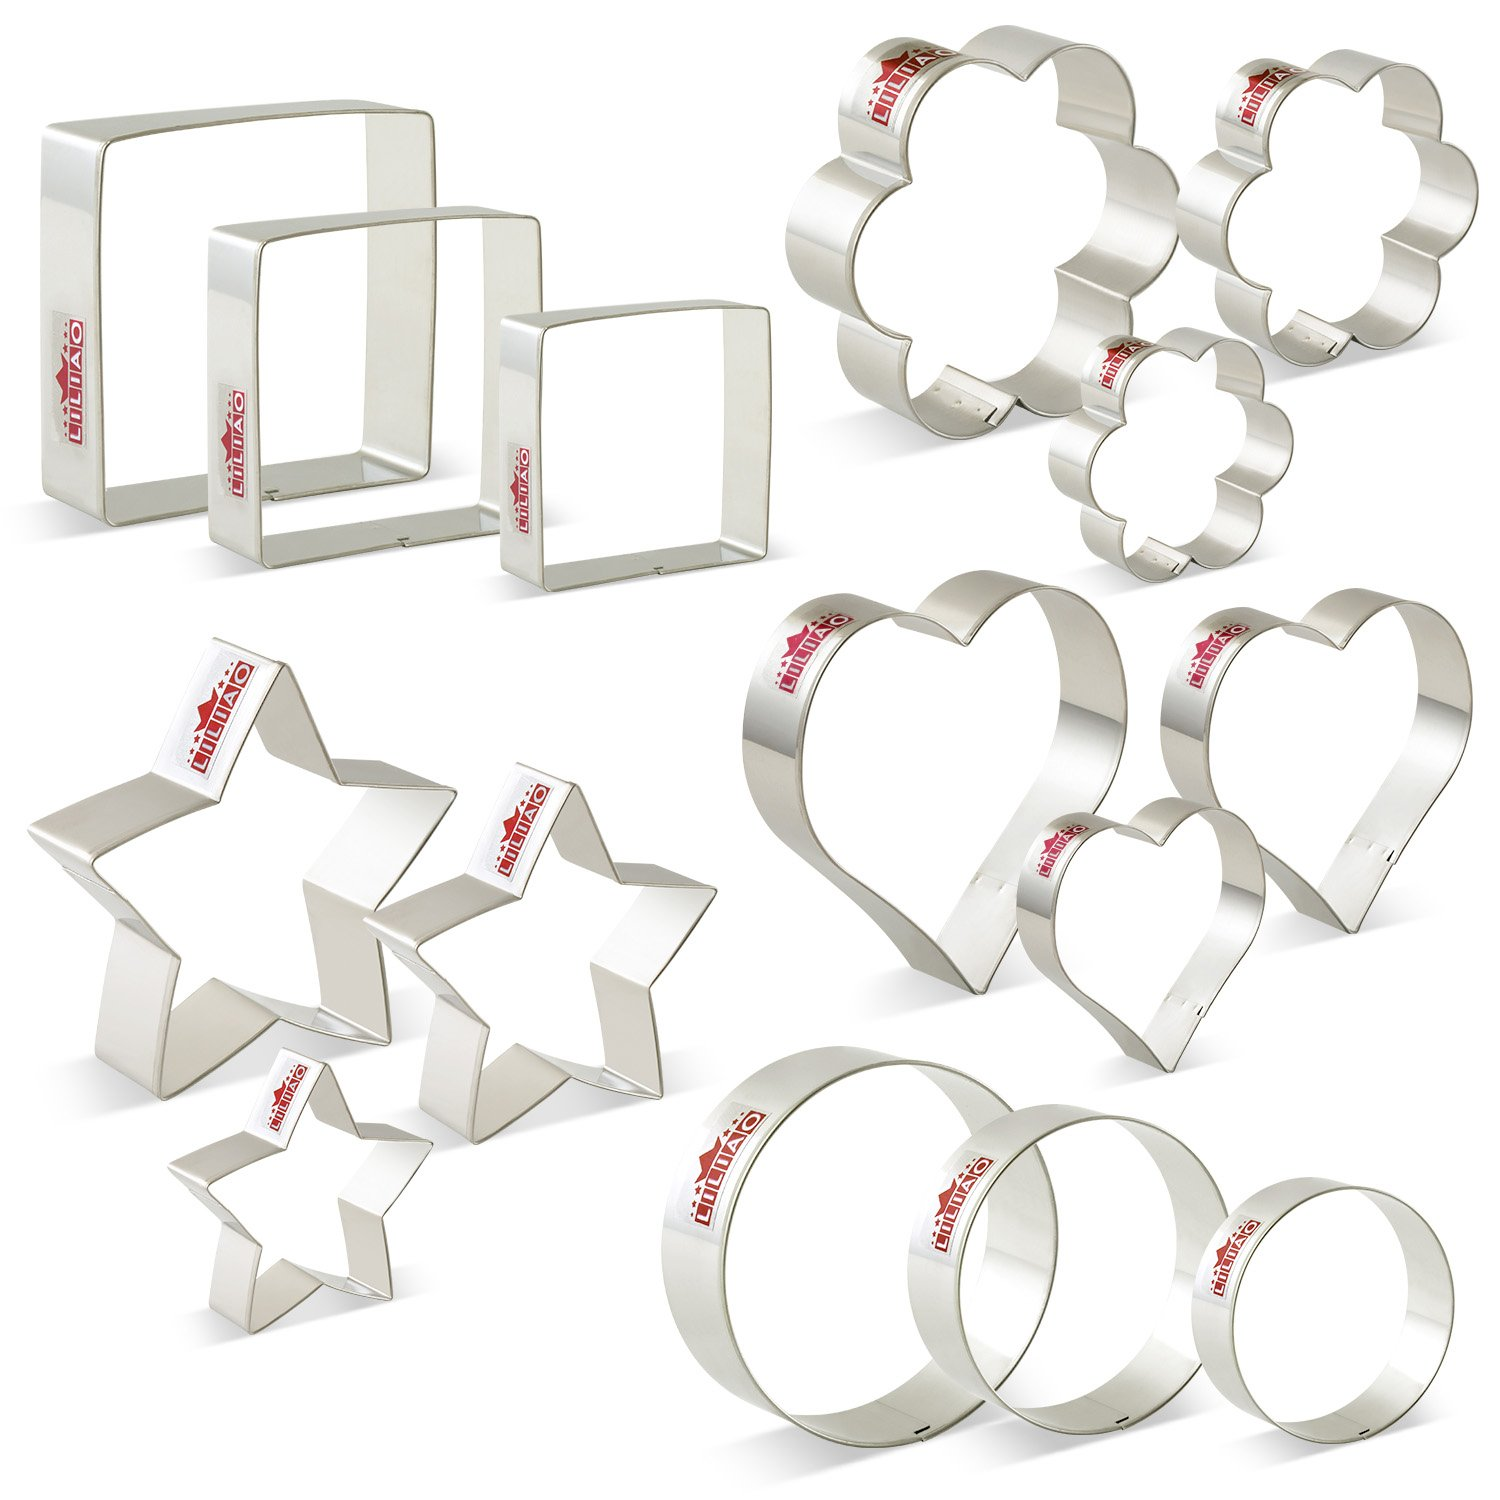 LILIAO Basic Cookie Cutters Set Round Biscuit Bread Fondant Cutters - 15 Piece - Stars, Hearts, Circles(Round), Flowers, Squares - Stainless Steel